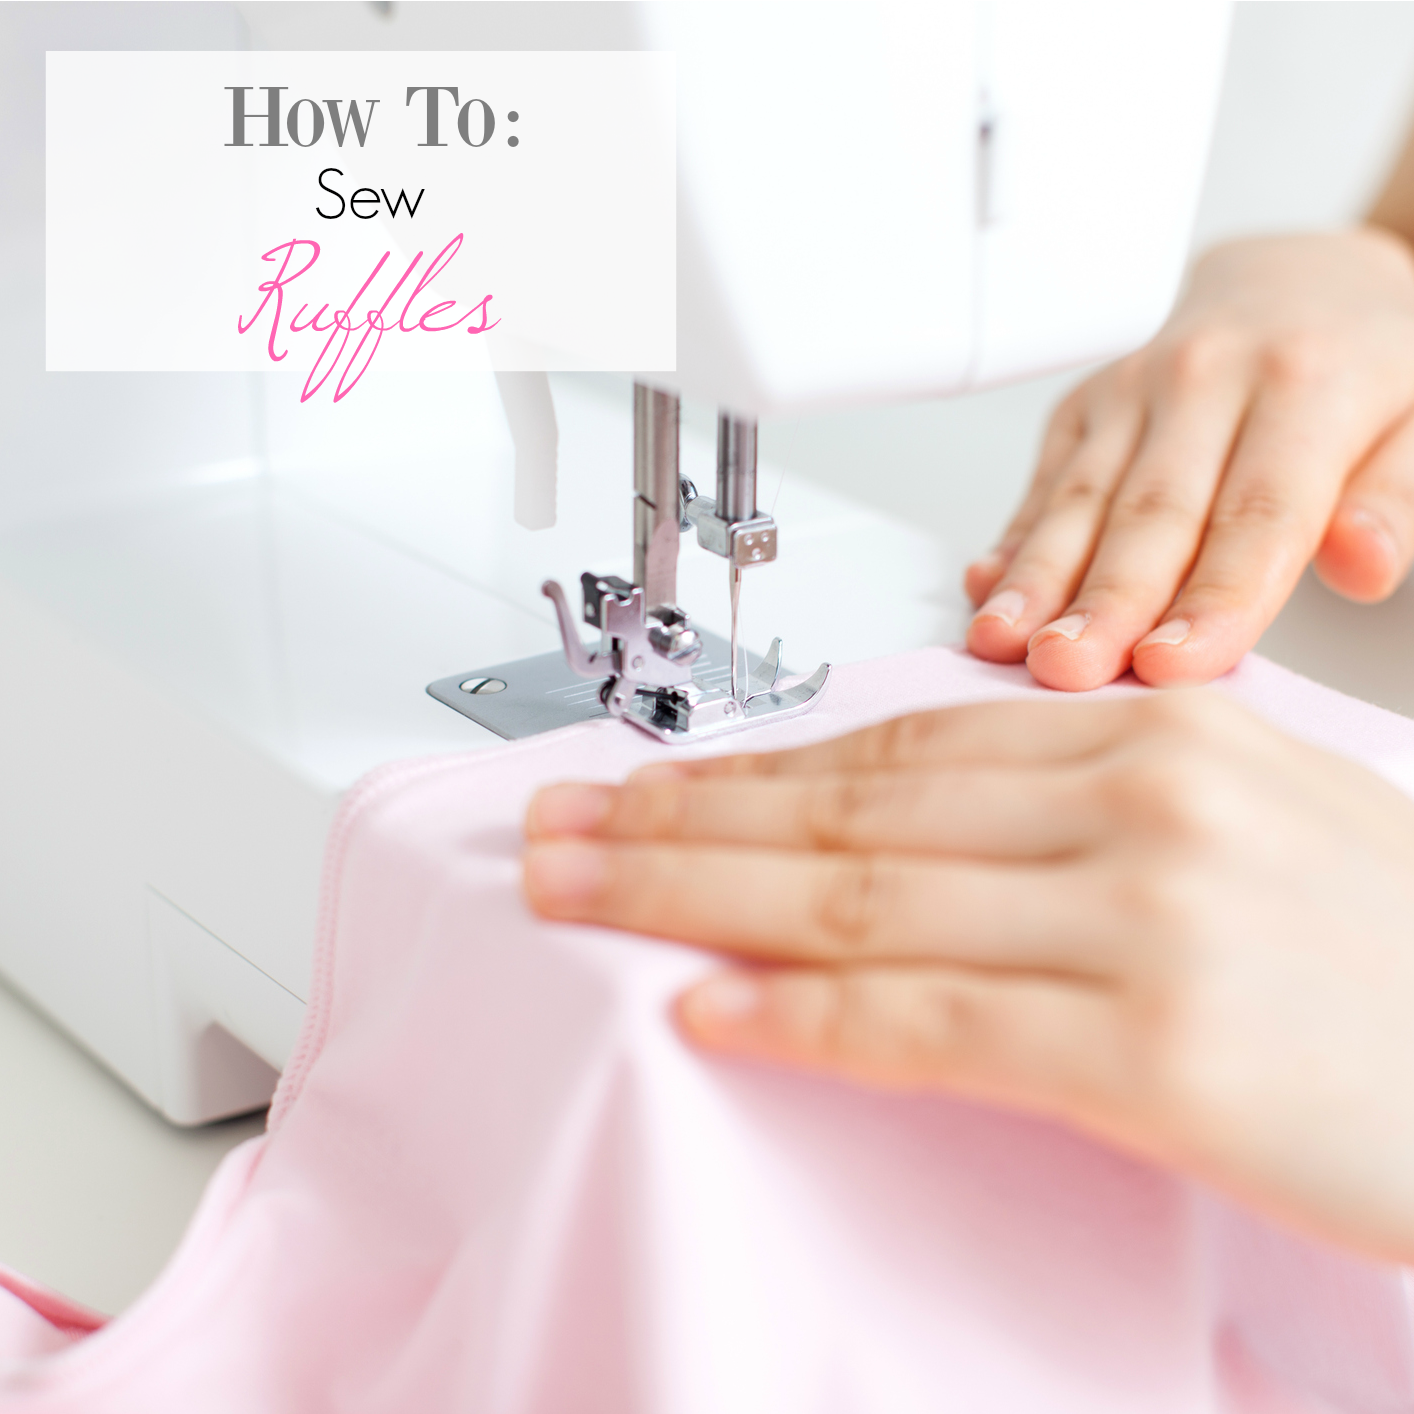 How to Sew Ruffles